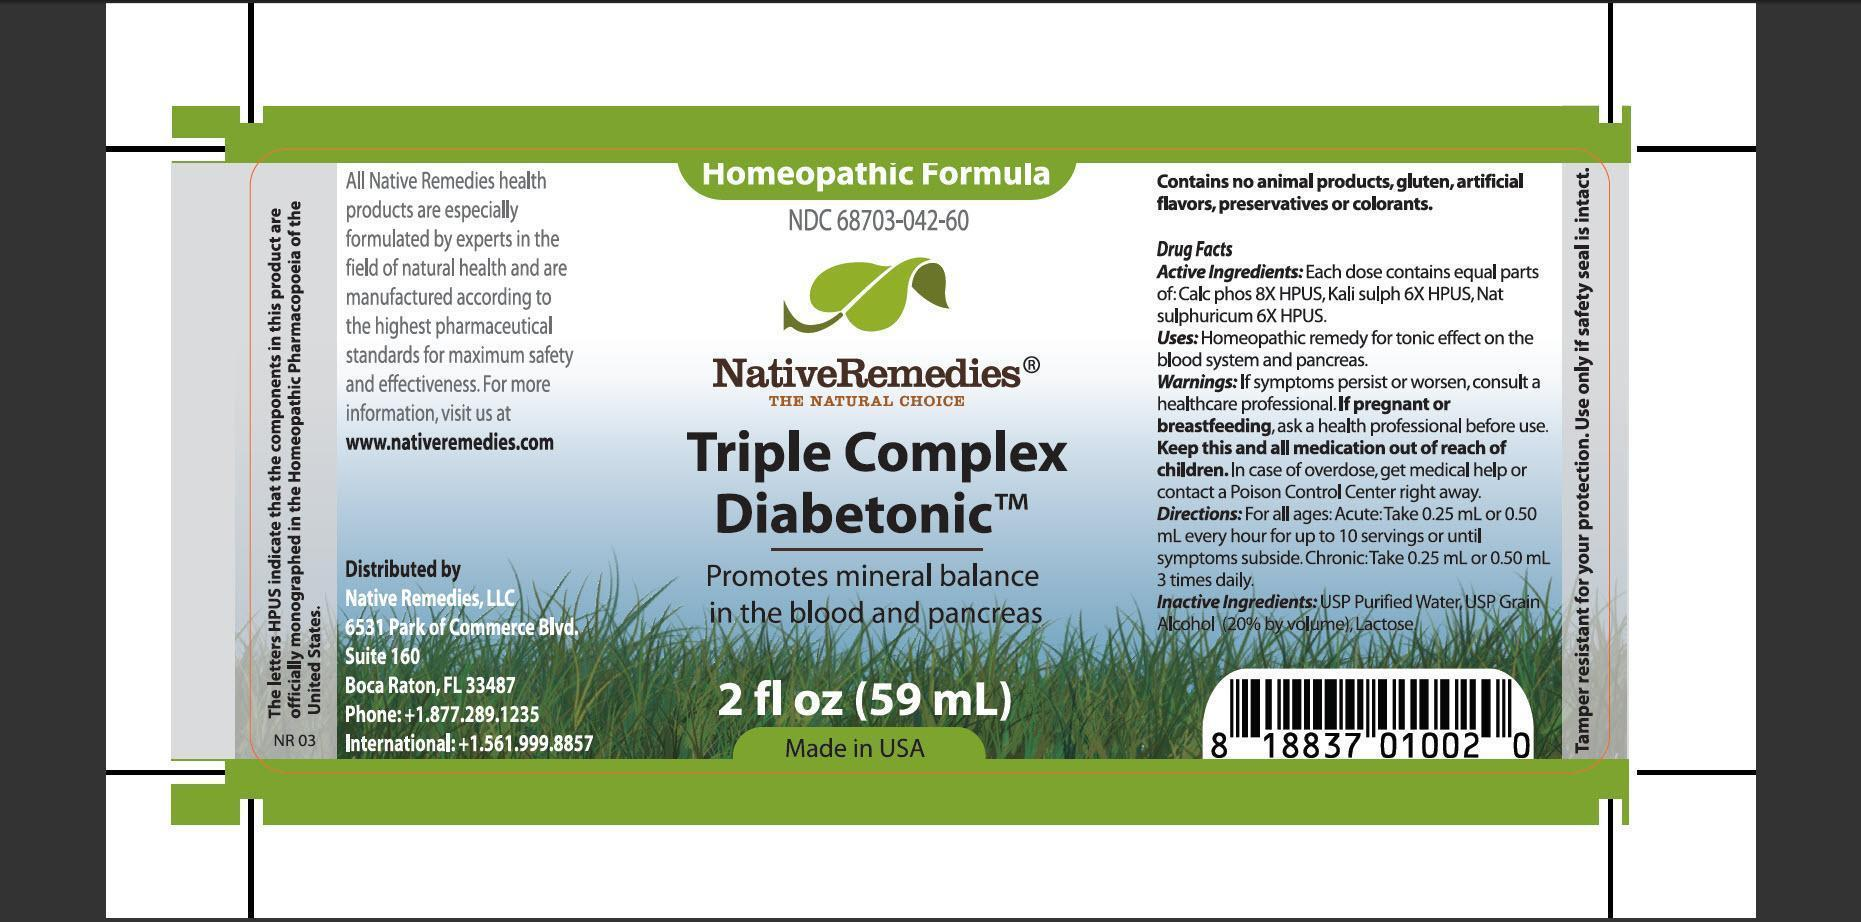 Triple Complex Diabetonic (Calc Phos, Kali Sulph, Nat Sulphuricum) Tincture [Native Remedies, Llc]